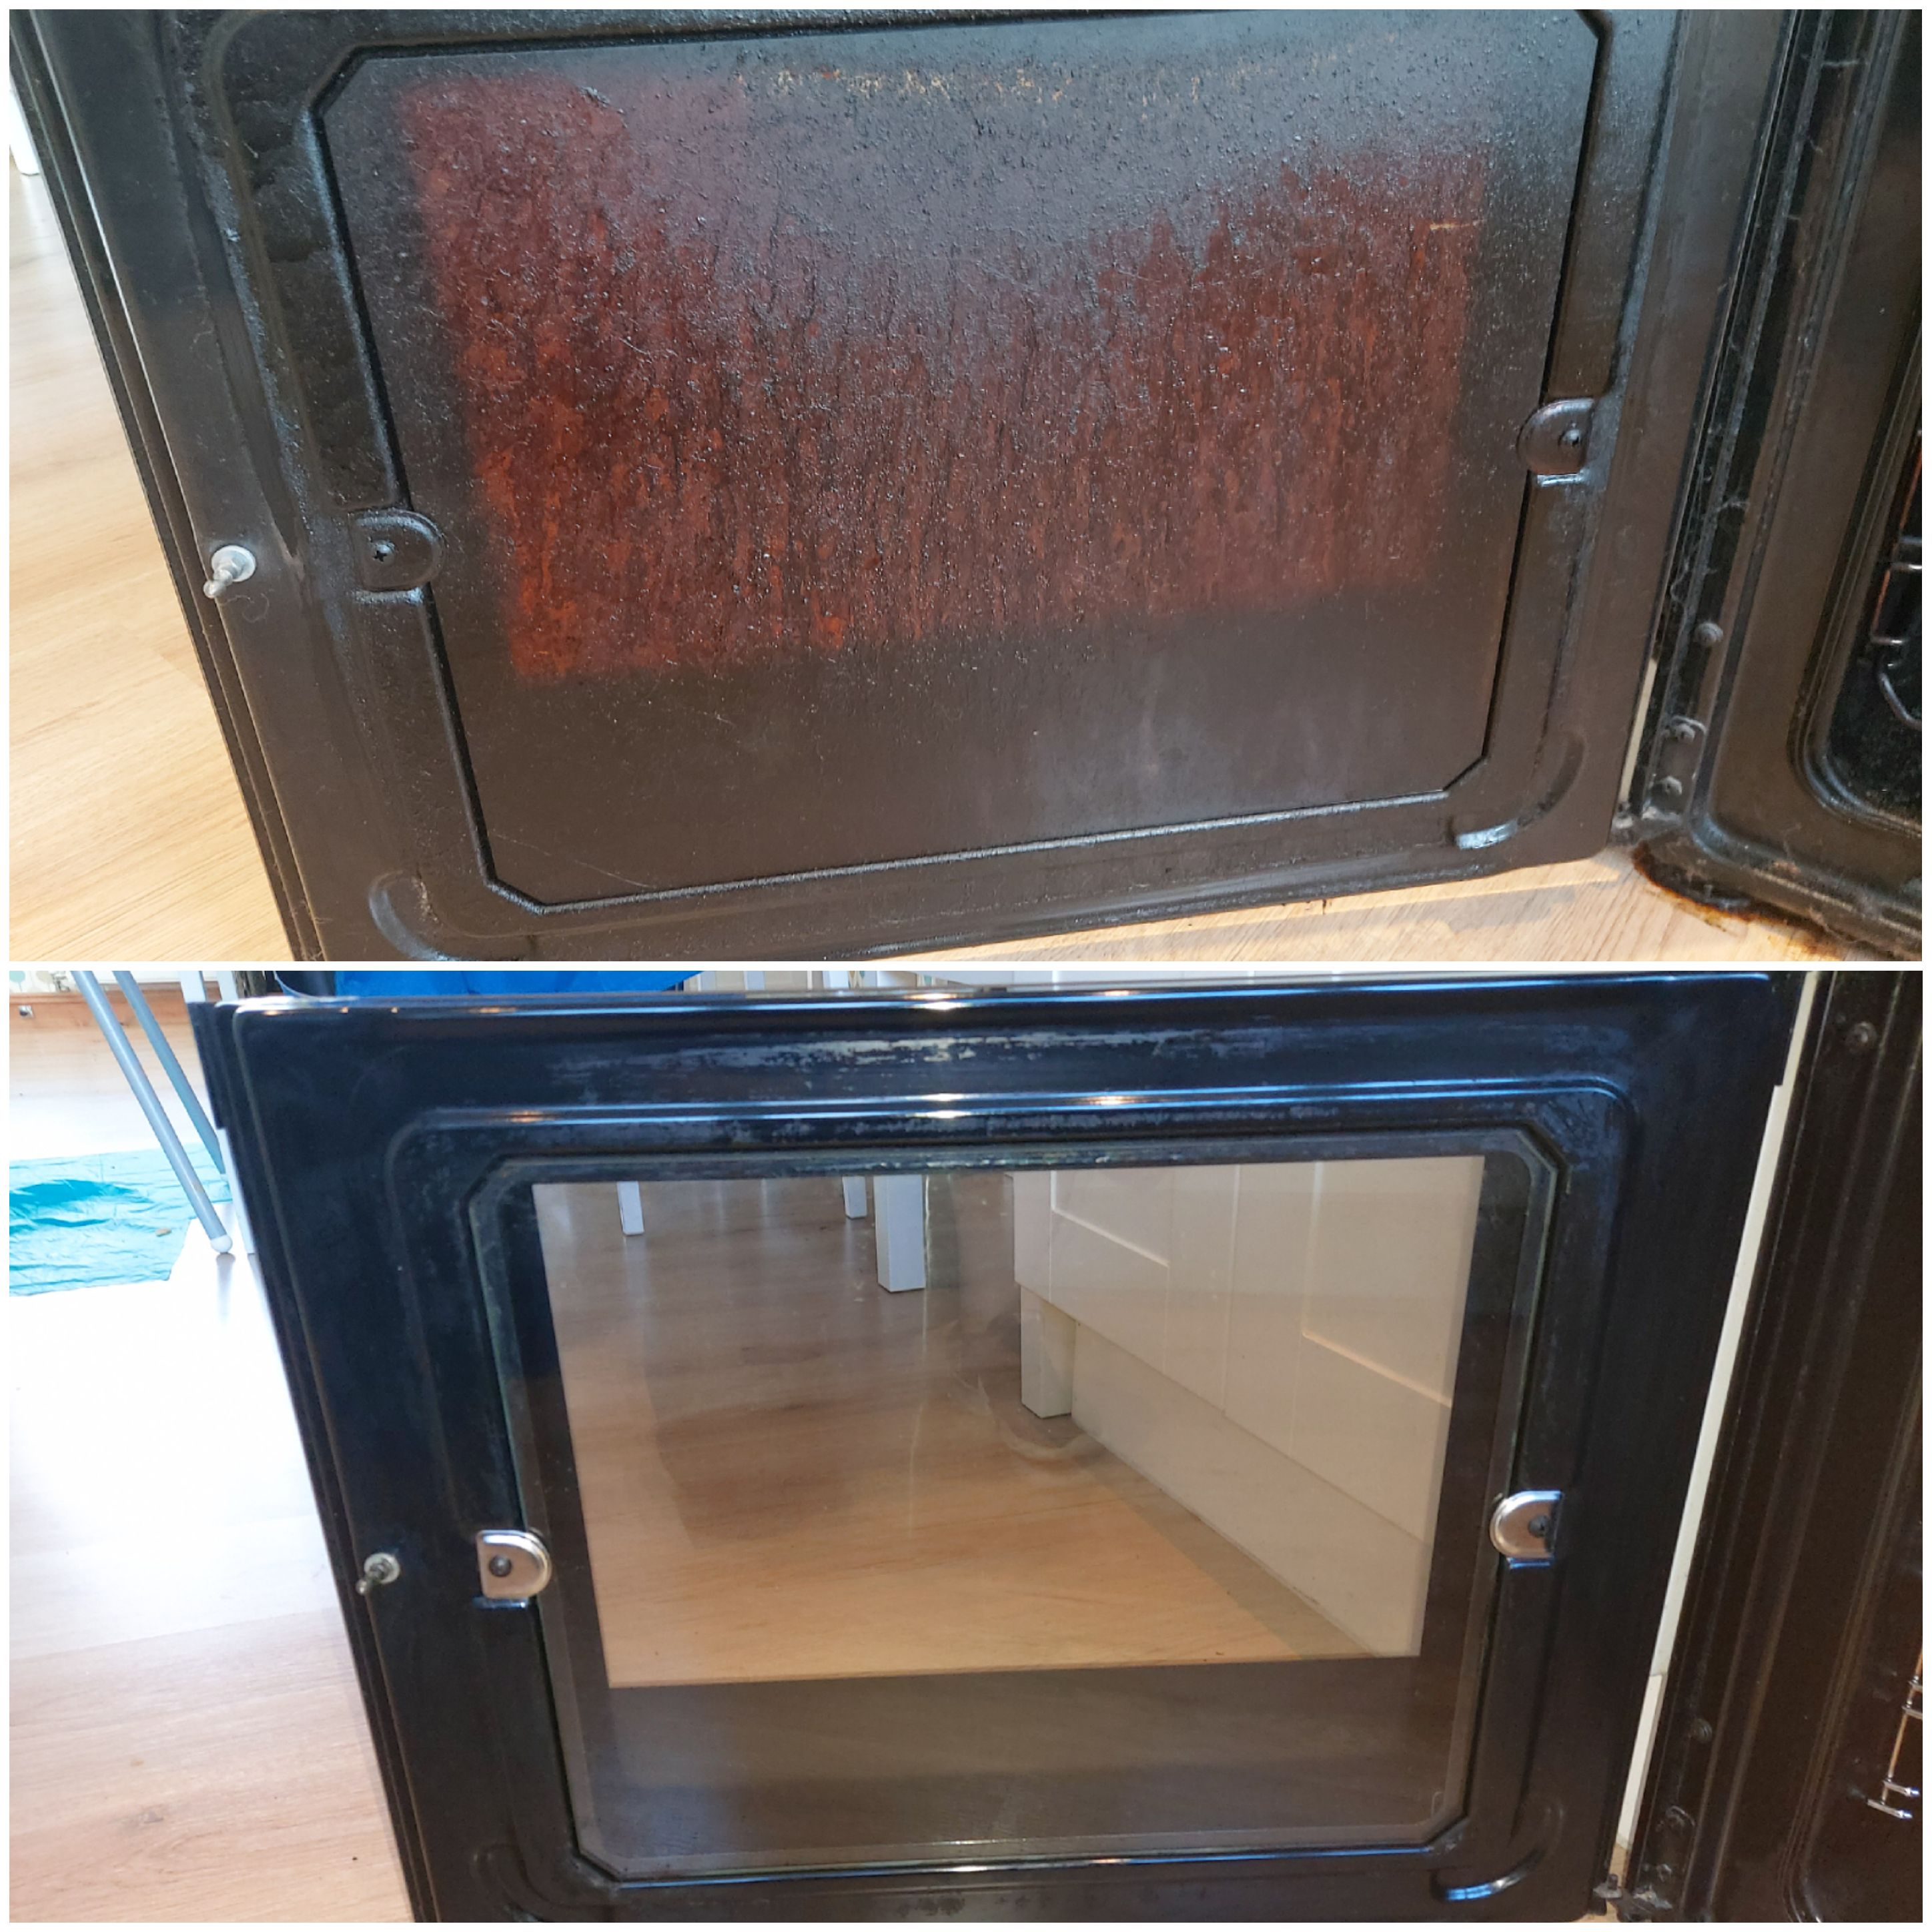 Oven Cleaning Special Offer Now Only £40.00 Household 2